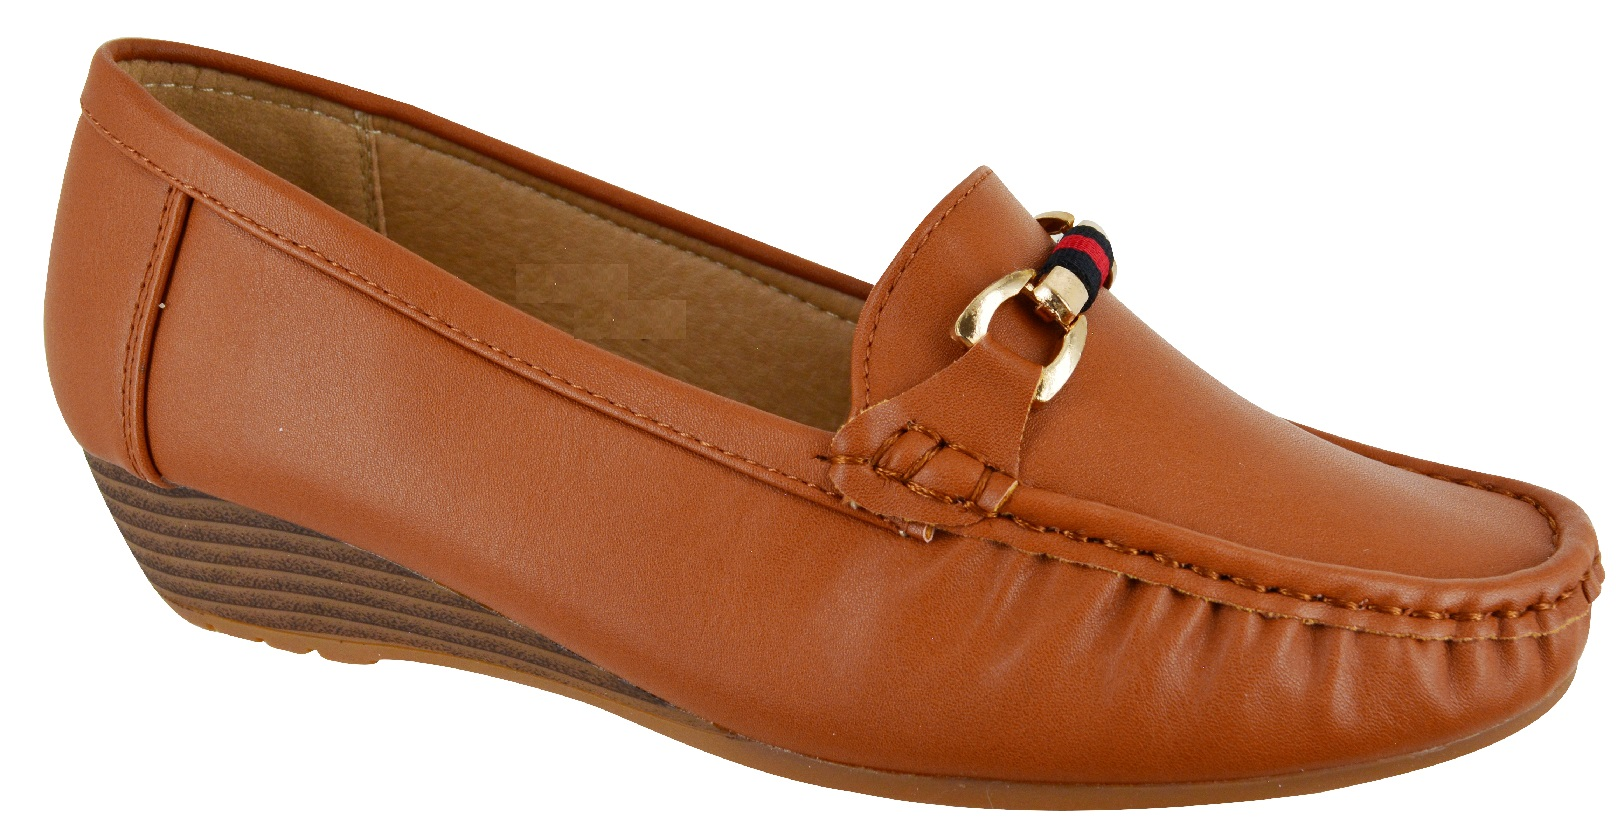 LADIES-WOMENS-LOW-HEEL-WEDGE-COMFORT-DESIGNER-WORK-LOAFERS-SHOES-SIZE-3-8-NEW thumbnail 4